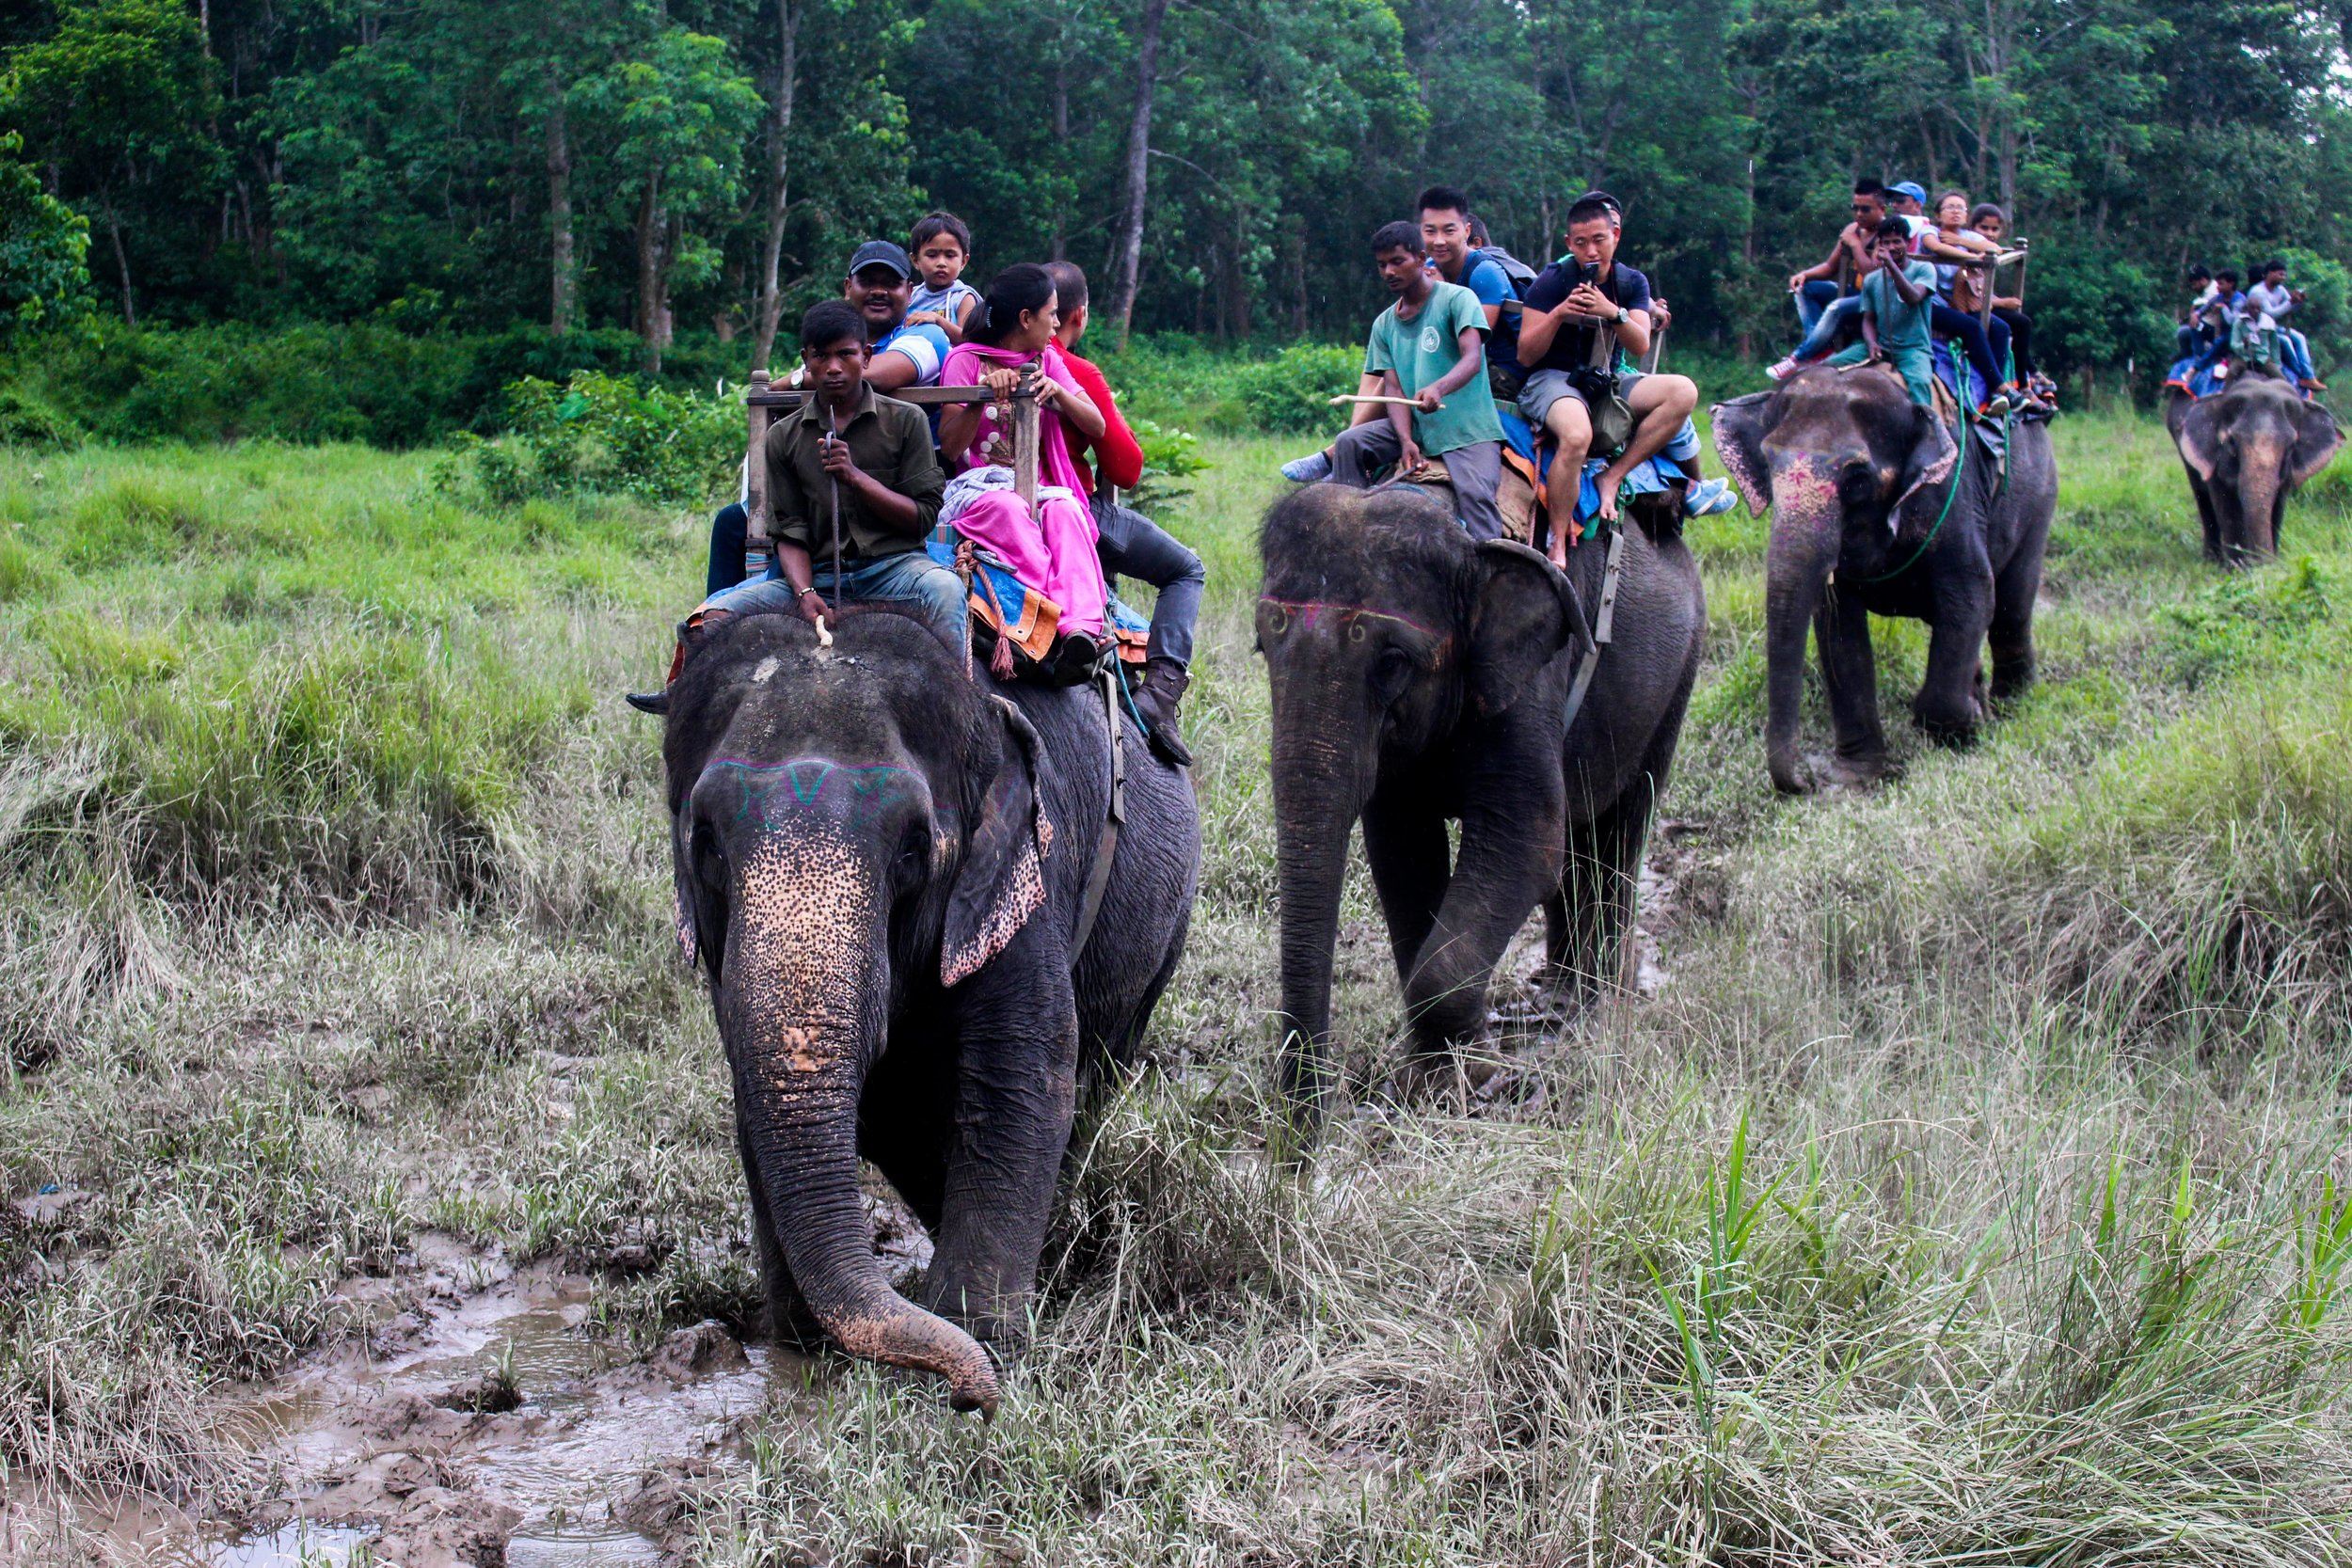 As fun as elephant treks sound, they perpetuate a brutal practice of animal abuse